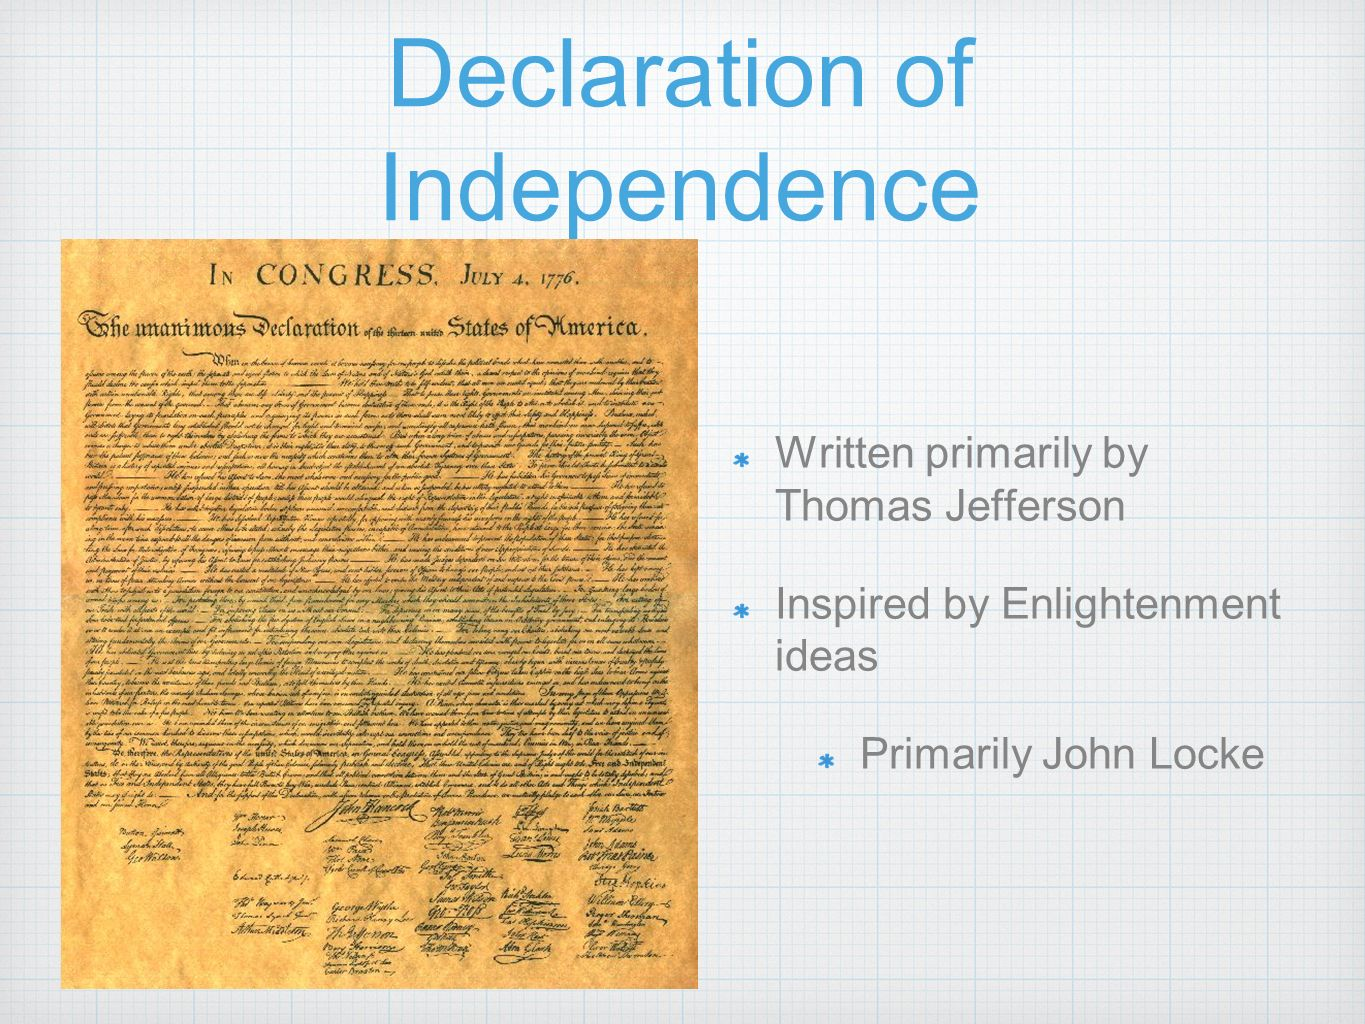 a highlight of the people responsible for writing the american declaration of independence Drafting the declaration of independence in 1776 became the defining event in   him to the five-person committee for drafting a declaration of independence   role in writing the defining document of the american revolution and, indeed, of  the  particularly the removal of a long paragraph that attributed responsibility of .